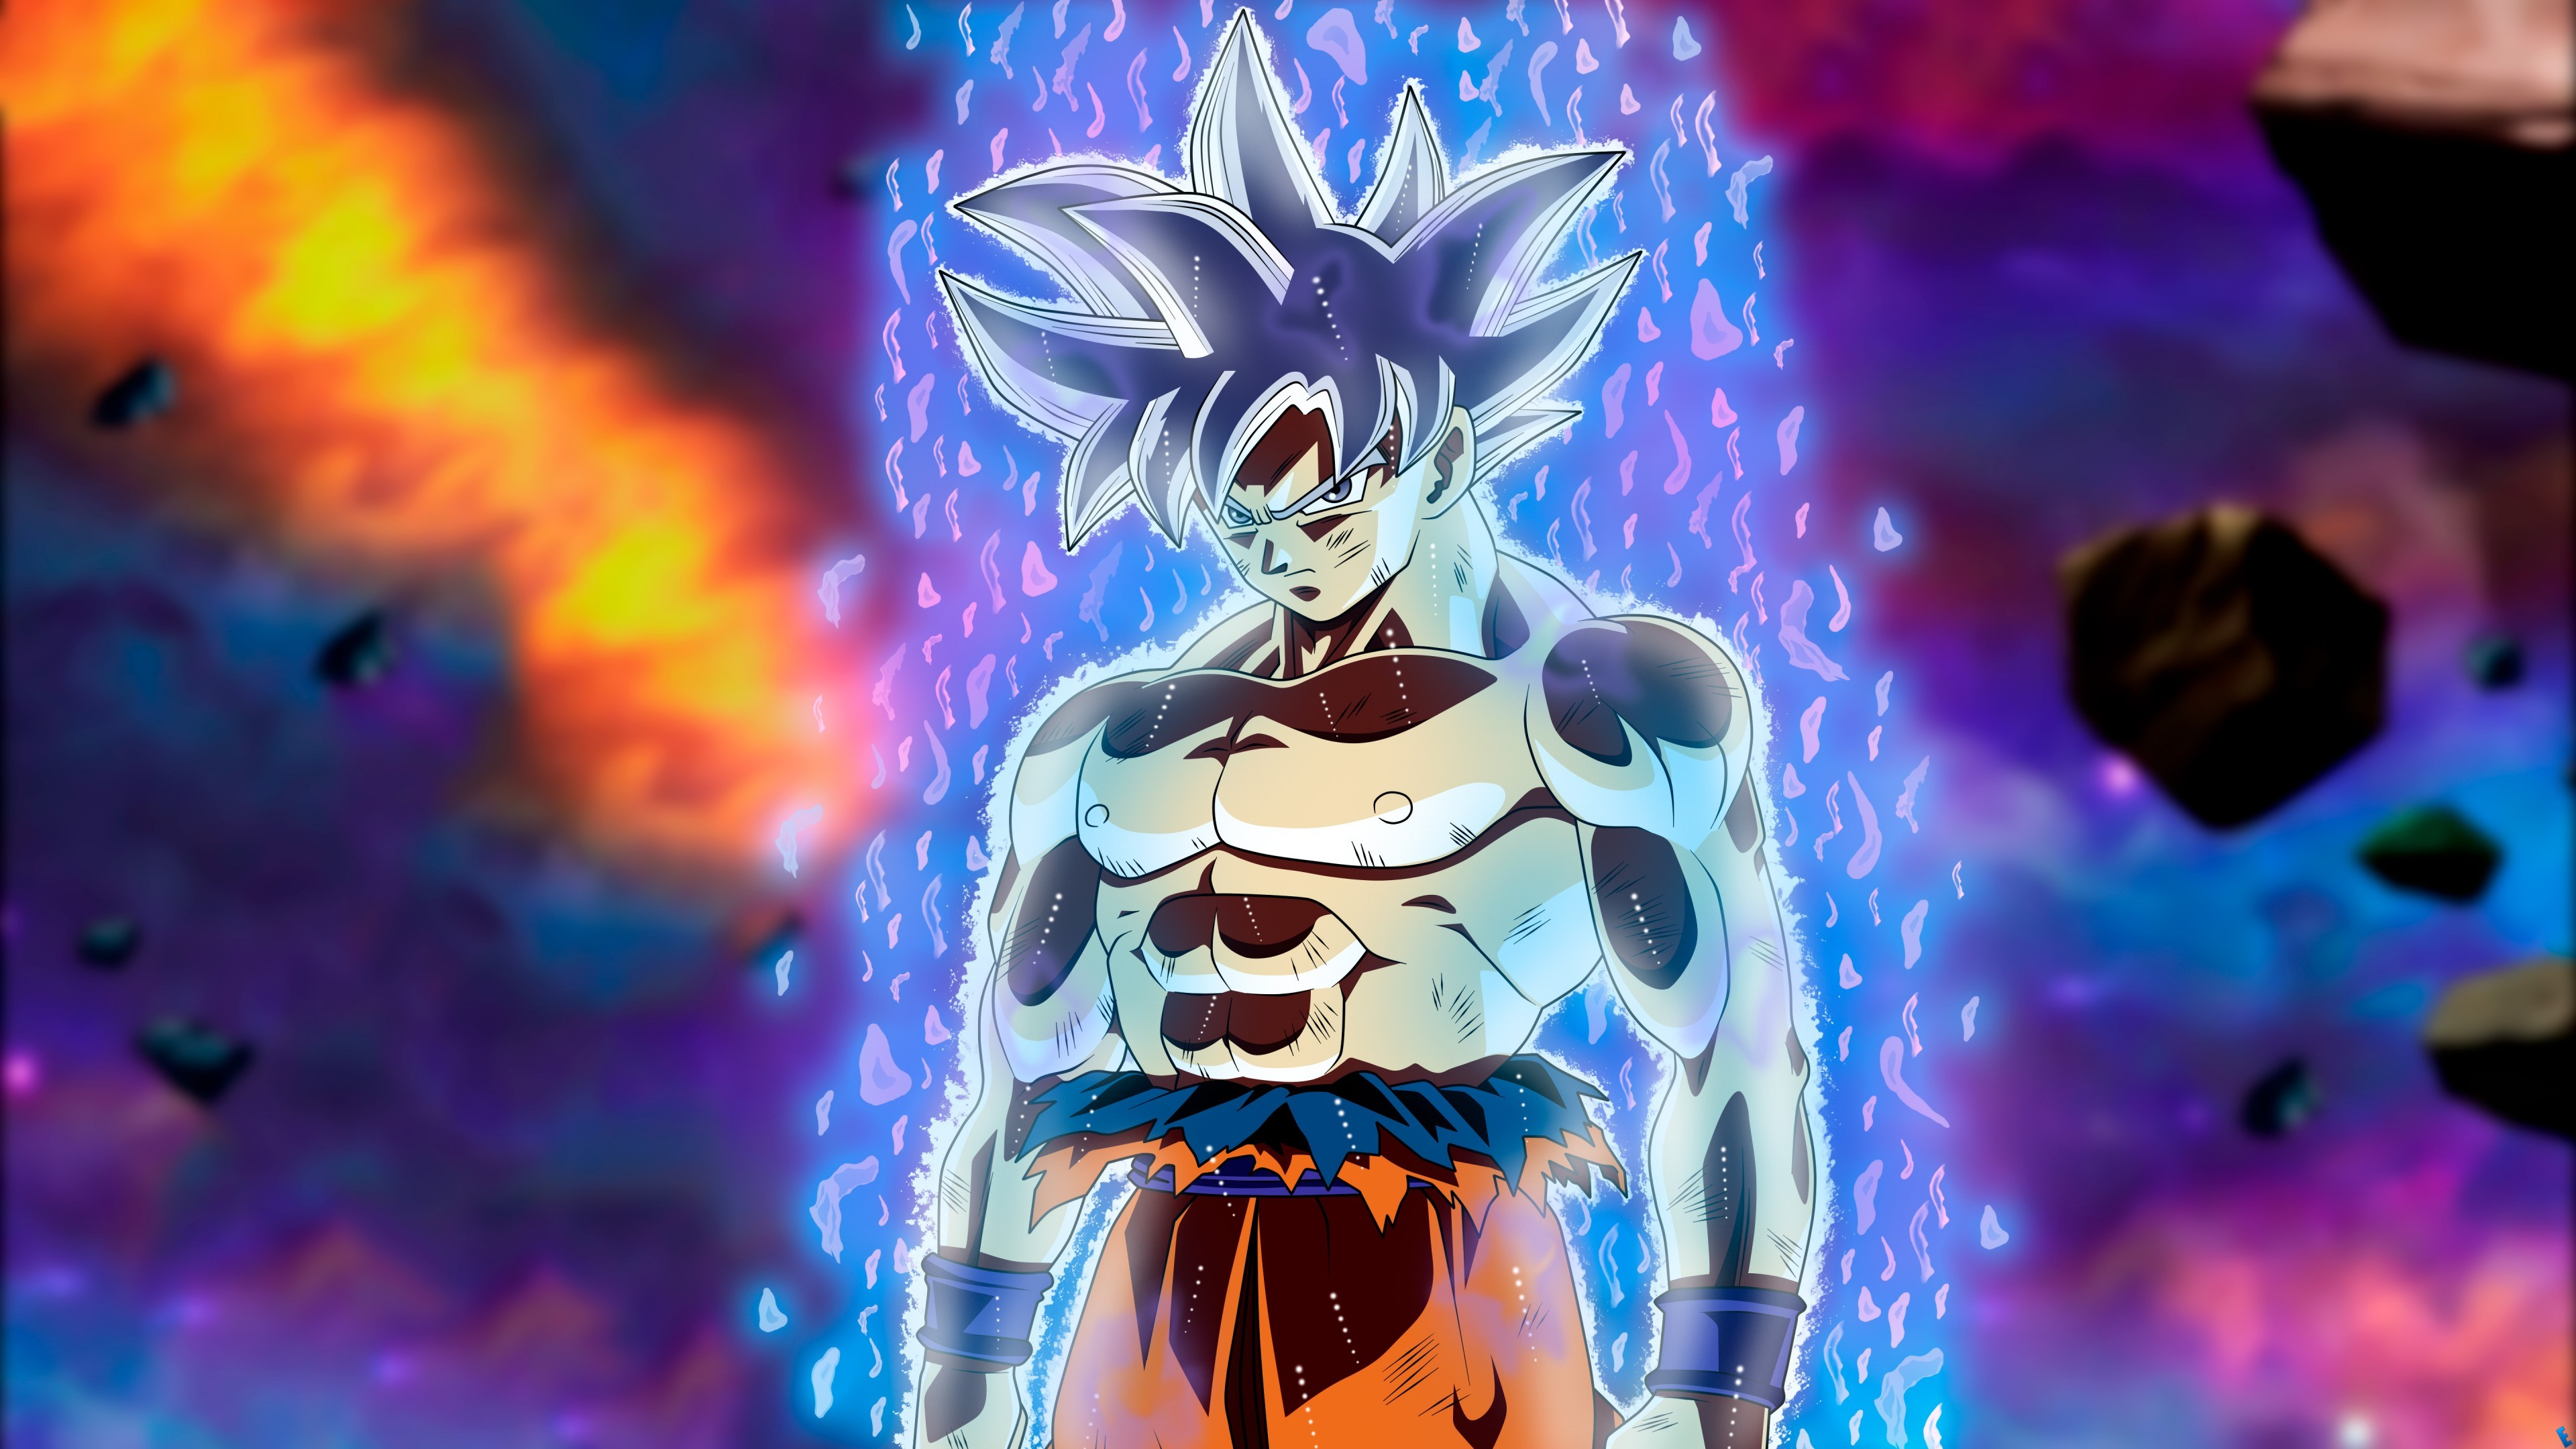 How to use live wallpapers : Dragon Ball Super Wallpapers (60+ background pictures)